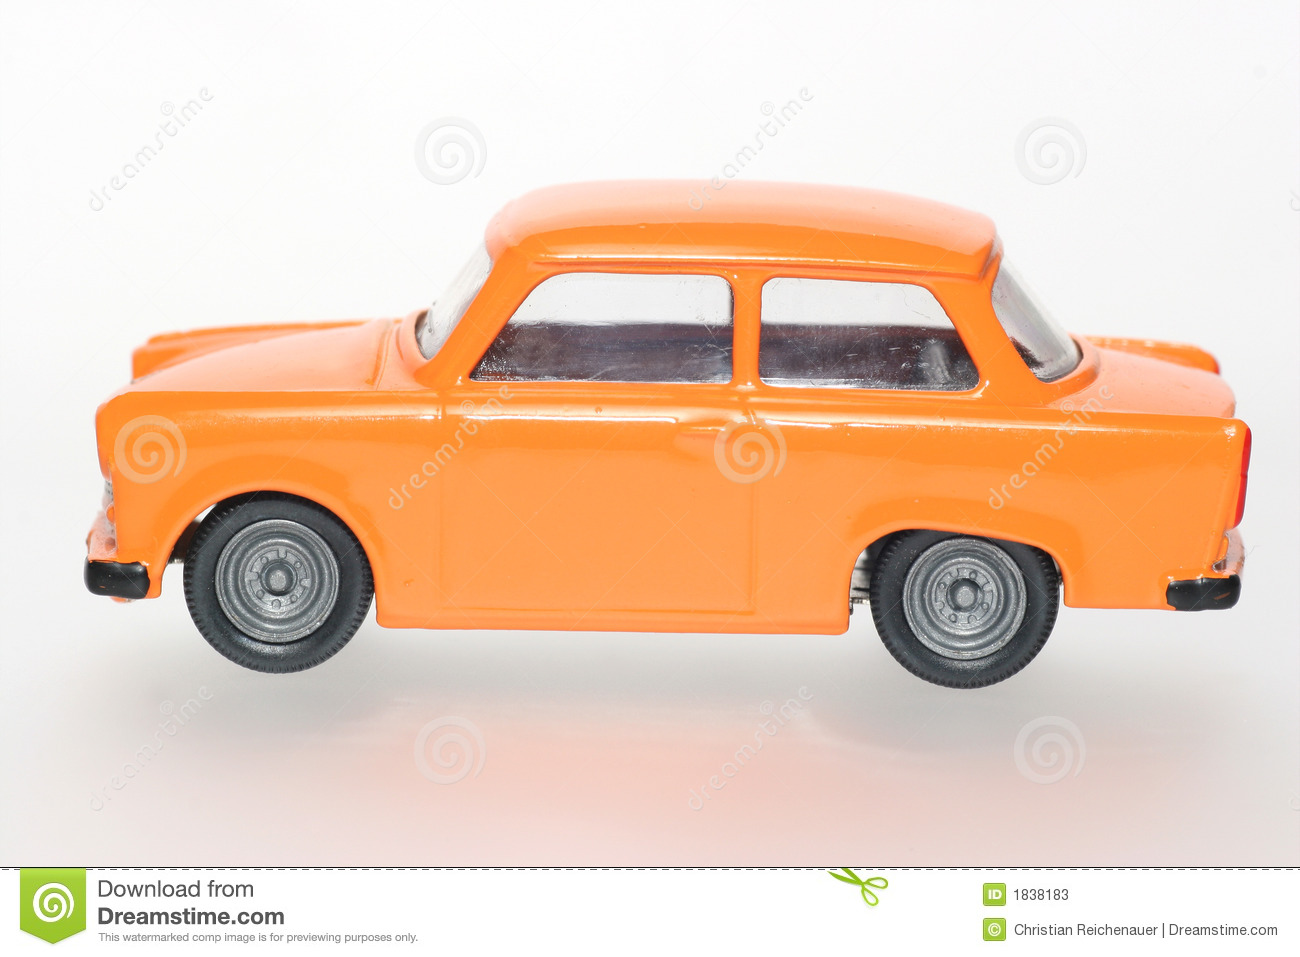 Plastic Used In Toy Cars